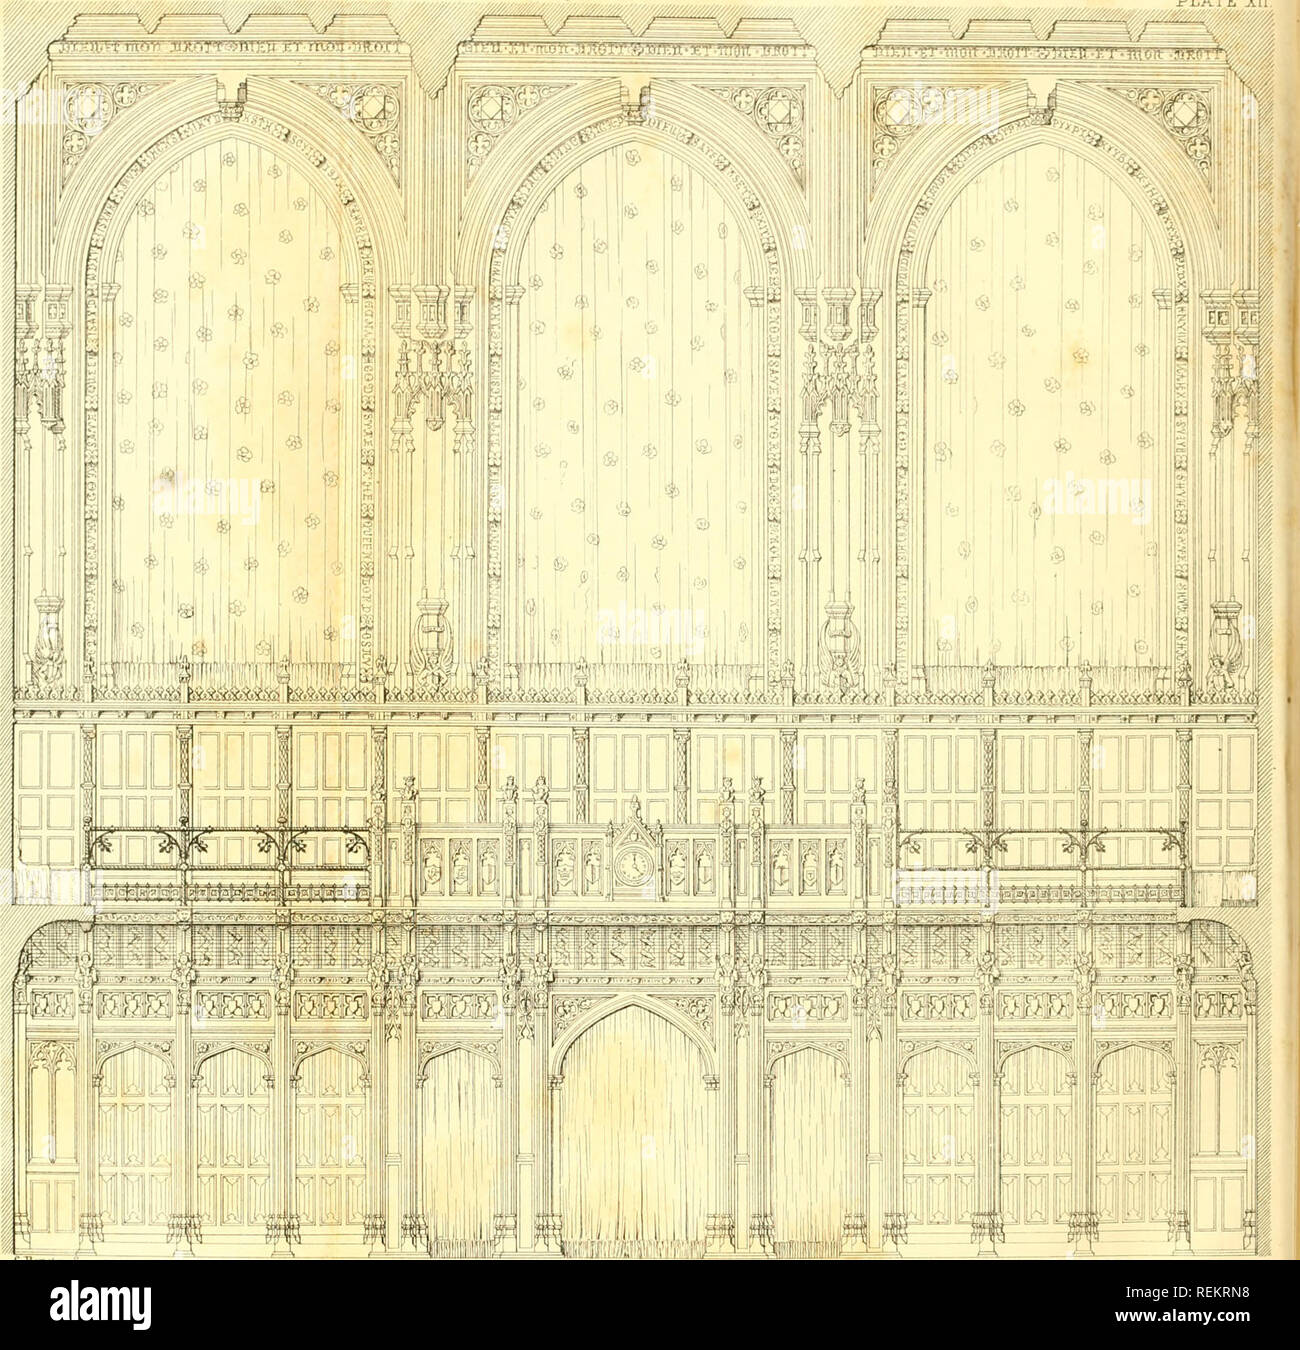 """. The Civil engineer and architect's journal, scientific and railway gazette. Architecture; Civil engineering; Science. ^S^//m>//^///////////^/////^^^^ """"'. C.""""B«.-g»t«r So © U g IE ® F I^ © CHARLES BARRY • ARCHITECT. ID 5 I I I I I -t 1 r I -1- 20 Te et. Please note that these images are extracted from scanned page images that may have been digitally enhanced for readability - coloration and appearance of these illustrations may not perfectly resemble the original work.. London : [William Laxton] - Stock Image"""